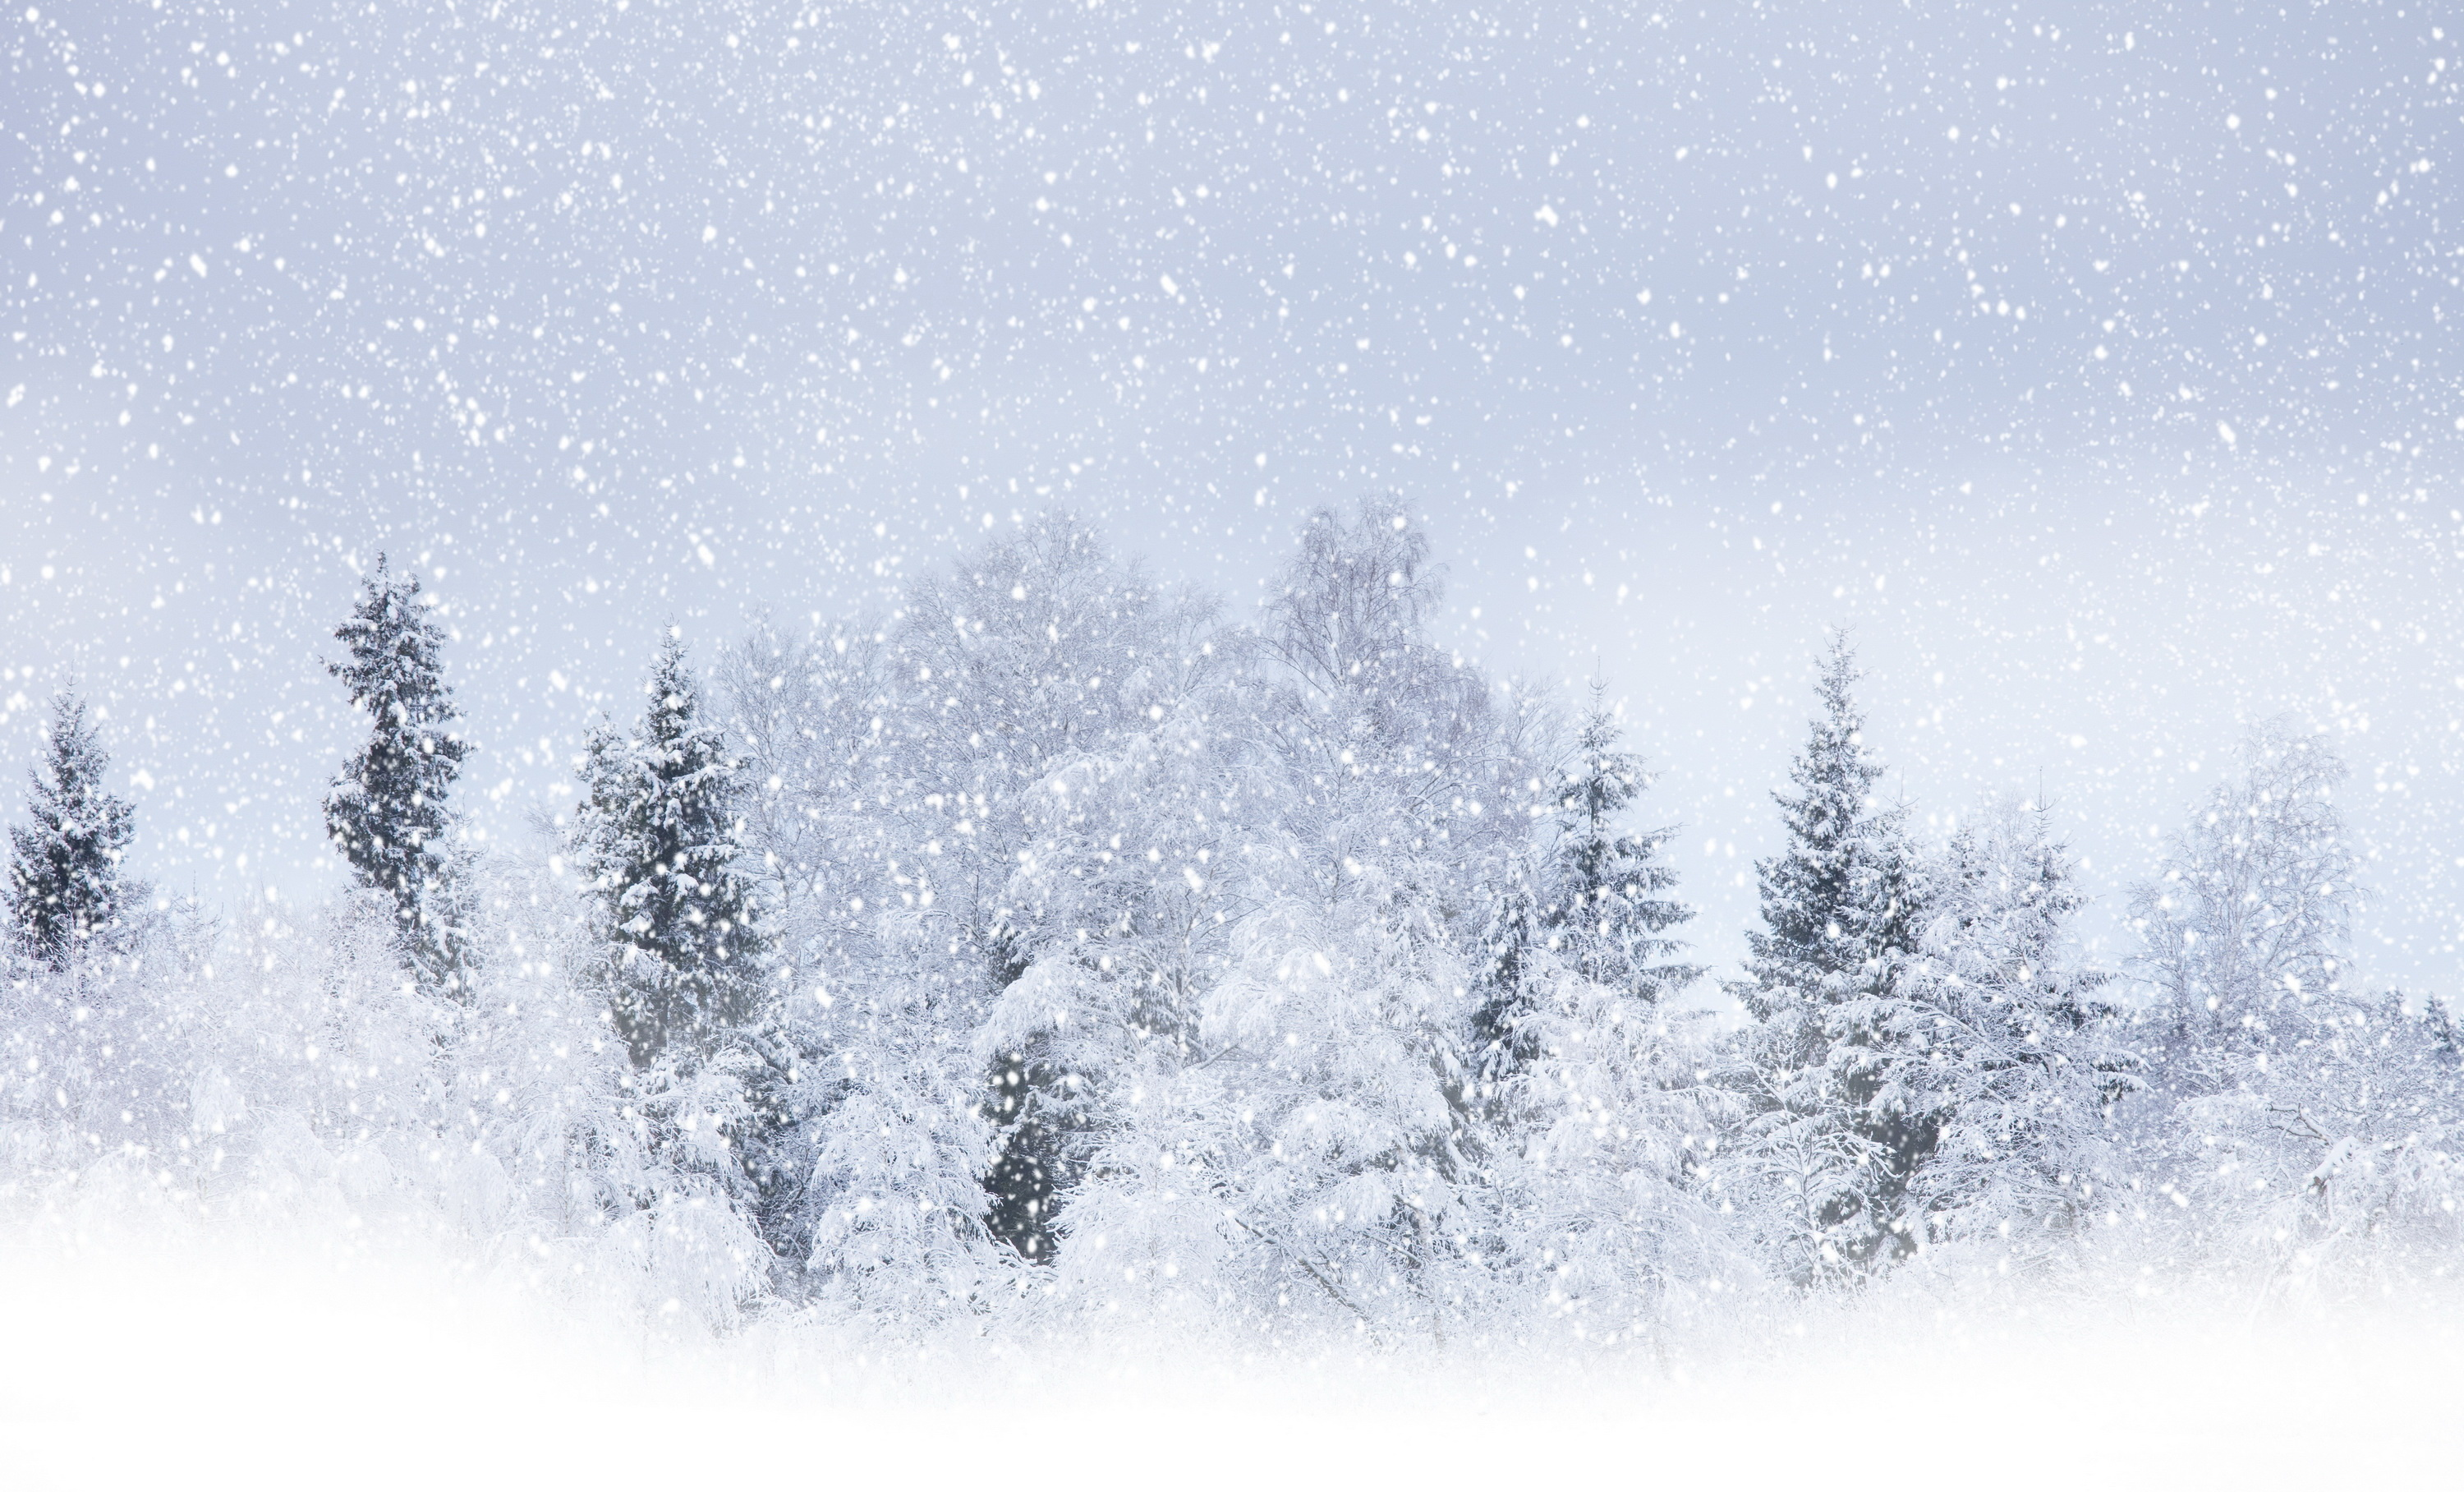 Wallpaper Winter snow tree blizzard snowstorm desktop 3000x1816